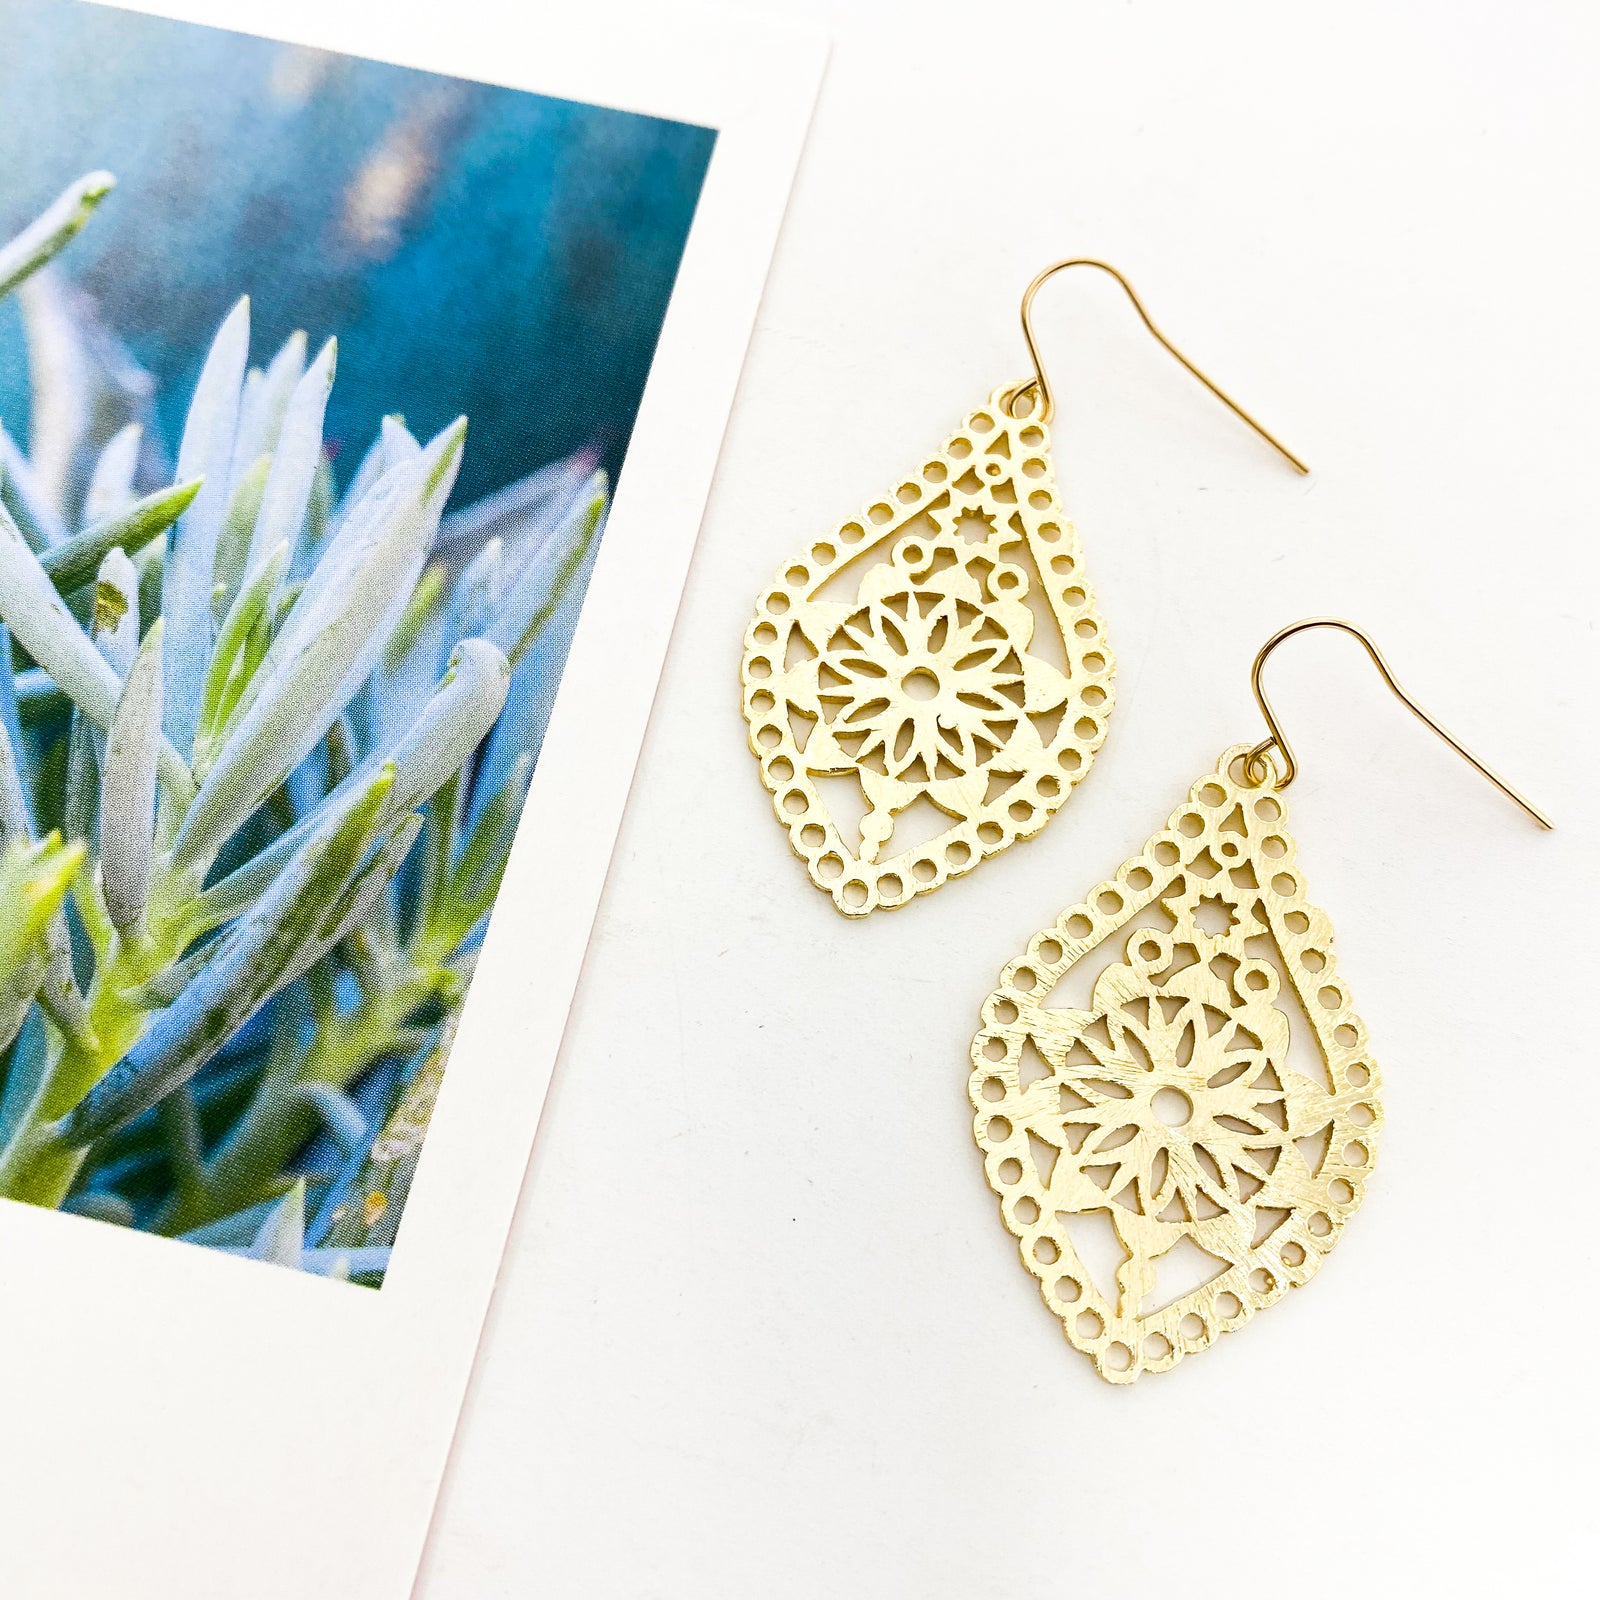 BRUSHED LACED FLORAL DROP EARRINGS | 14K GOLD-FILLED